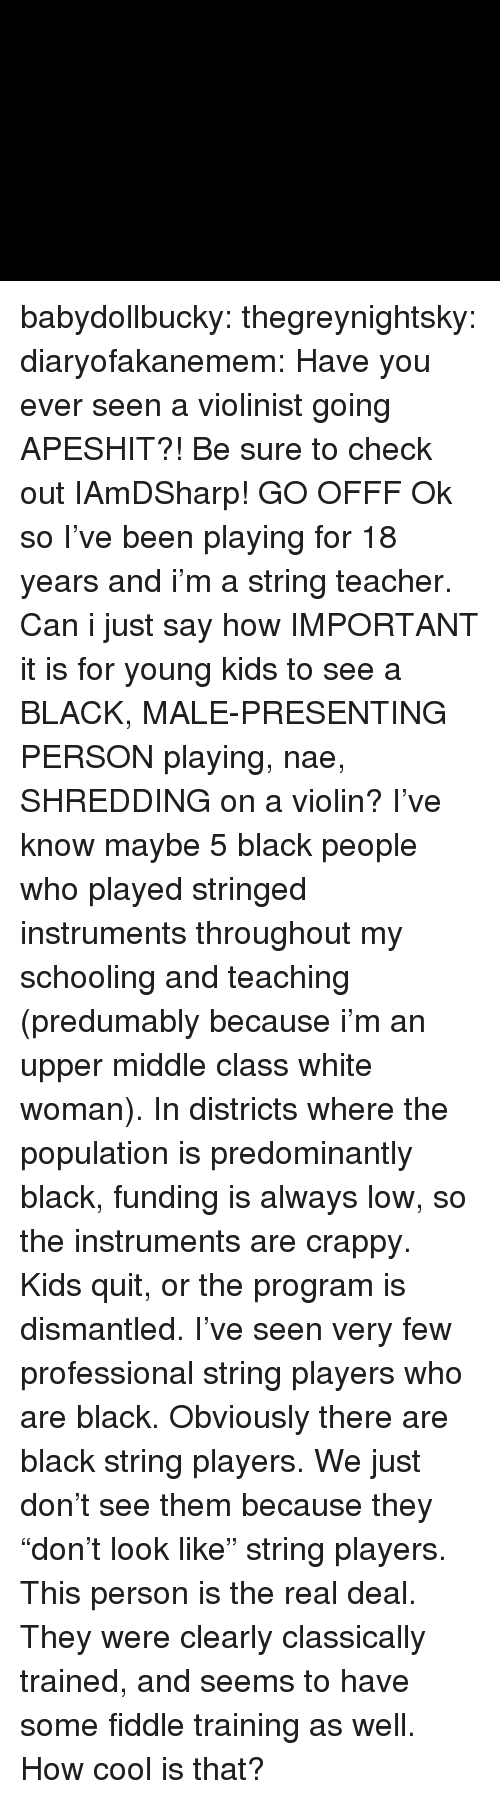 """Instagram, Teacher, and Tumblr: babydollbucky:  thegreynightsky:  diaryofakanemem:   Have you ever seen a violinist going APESHIT?! Be sure to check outIAmDSharp!   GO OFFF  Ok so I've been playing for 18 years and i'm a string teacher. Can i just say how IMPORTANT it is for young kids to see a BLACK, MALE-PRESENTING PERSON playing, nae, SHREDDING on a violin? I've know maybe 5 black people who played stringed instruments throughout my schooling and teaching (predumably because i'm an upper middle class white woman). In districts where the population is predominantly black, funding is always low, so the instruments are crappy. Kids quit, or the program is dismantled. I've seen very few professional string players who are black.  Obviously there are black string players. We just don't see them because they """"don't look like"""" string players.   This person is the real deal. They were clearly classically trained, and seems to have some fiddle training as well. How cool is that?"""